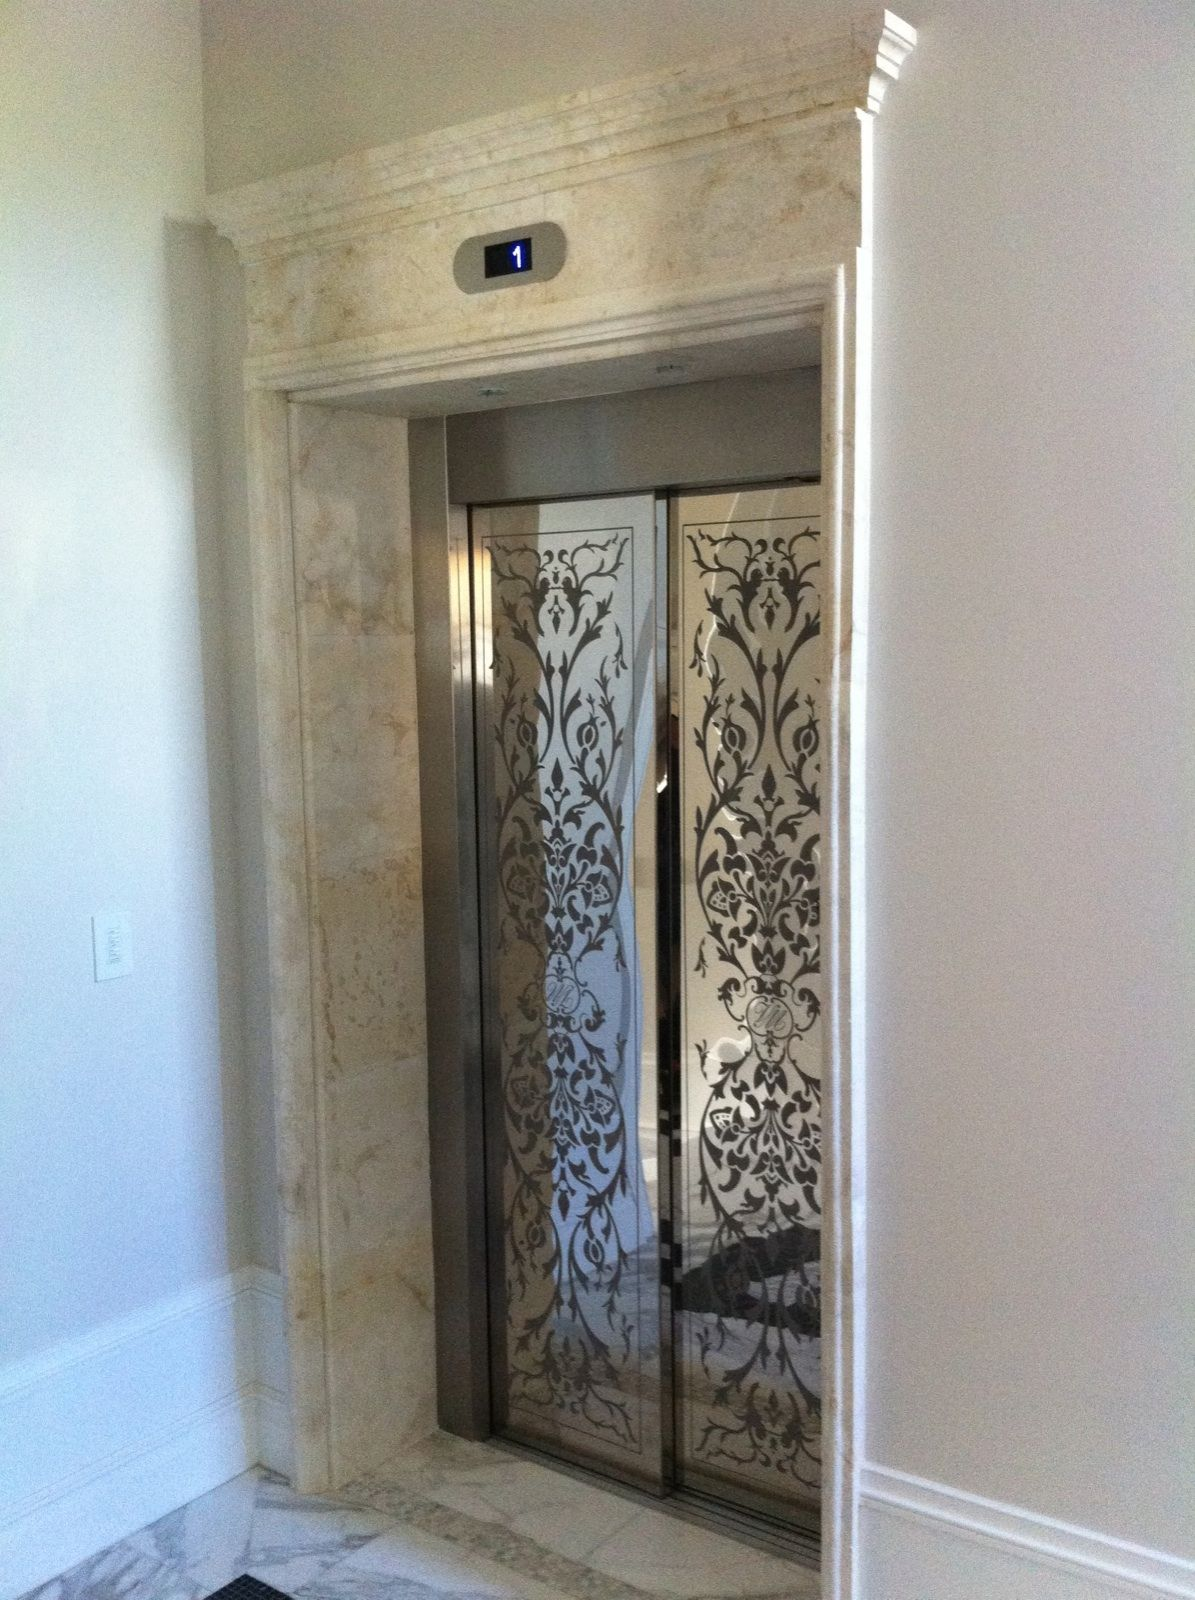 Elevator Doors & Trim. Wouldn't this be a statement in your home!! Beautifully done.